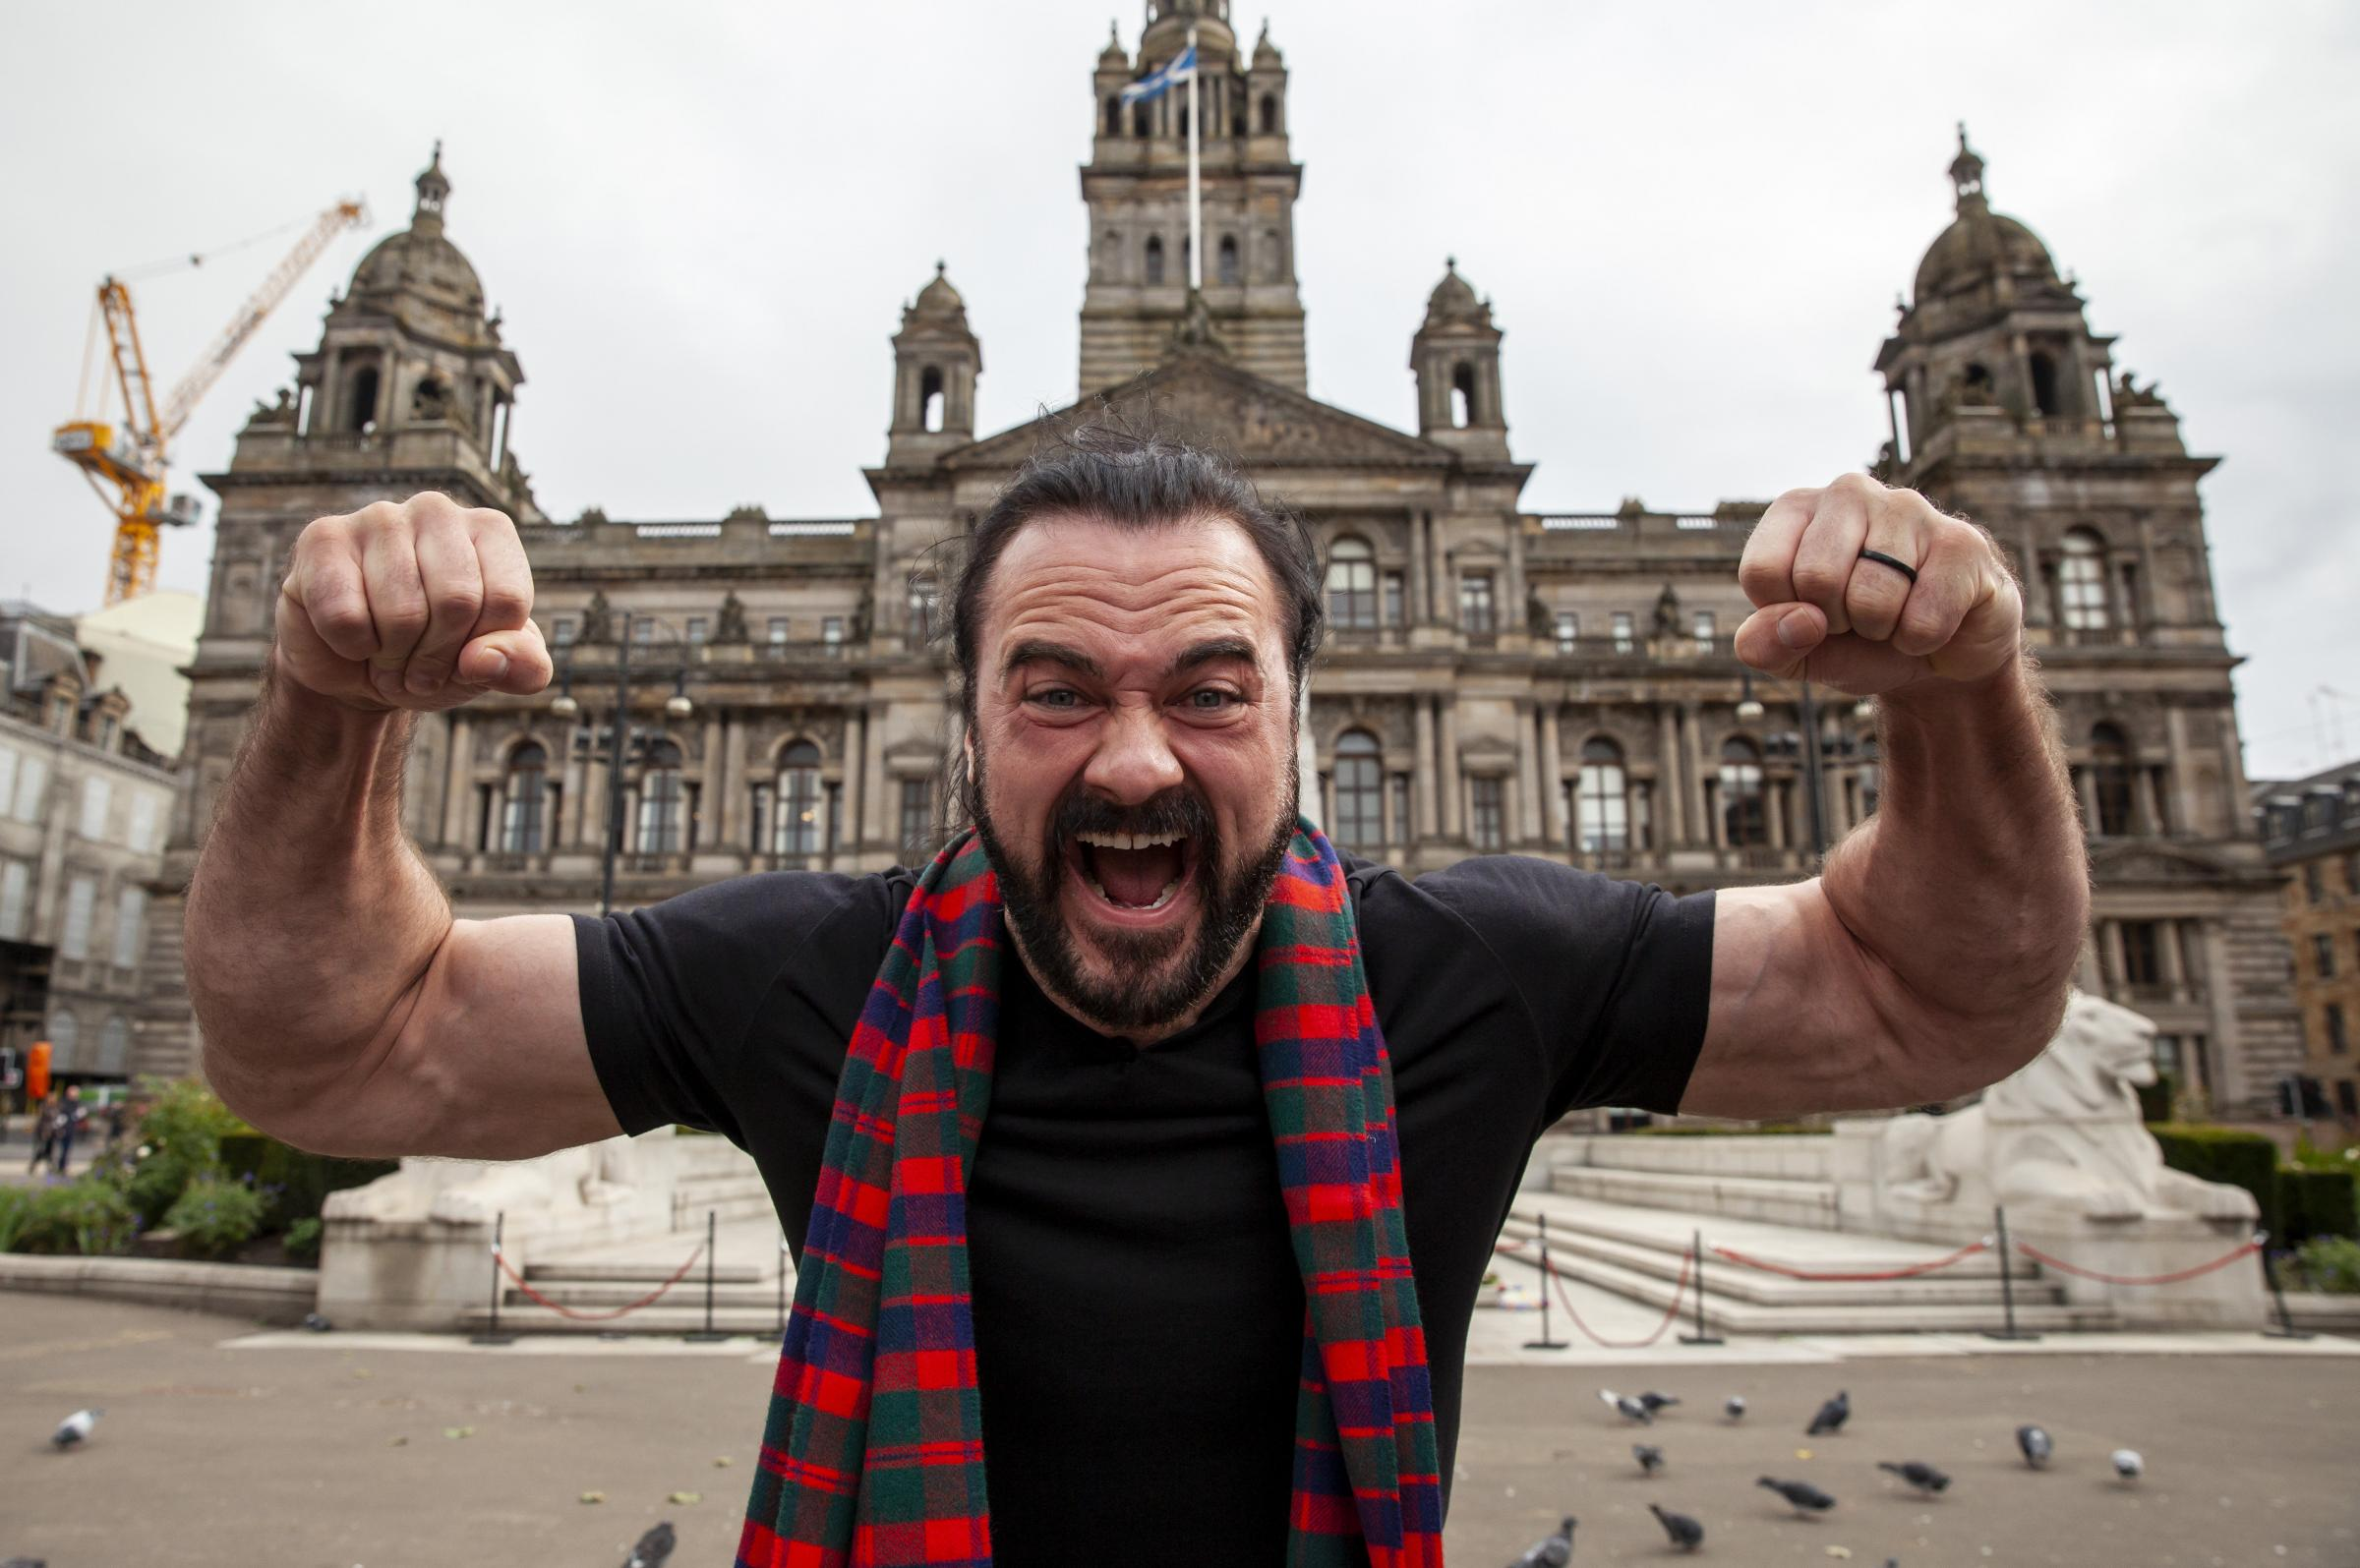 Lord Provost and WWE superstar Drew McIntyre meet in Glasgow